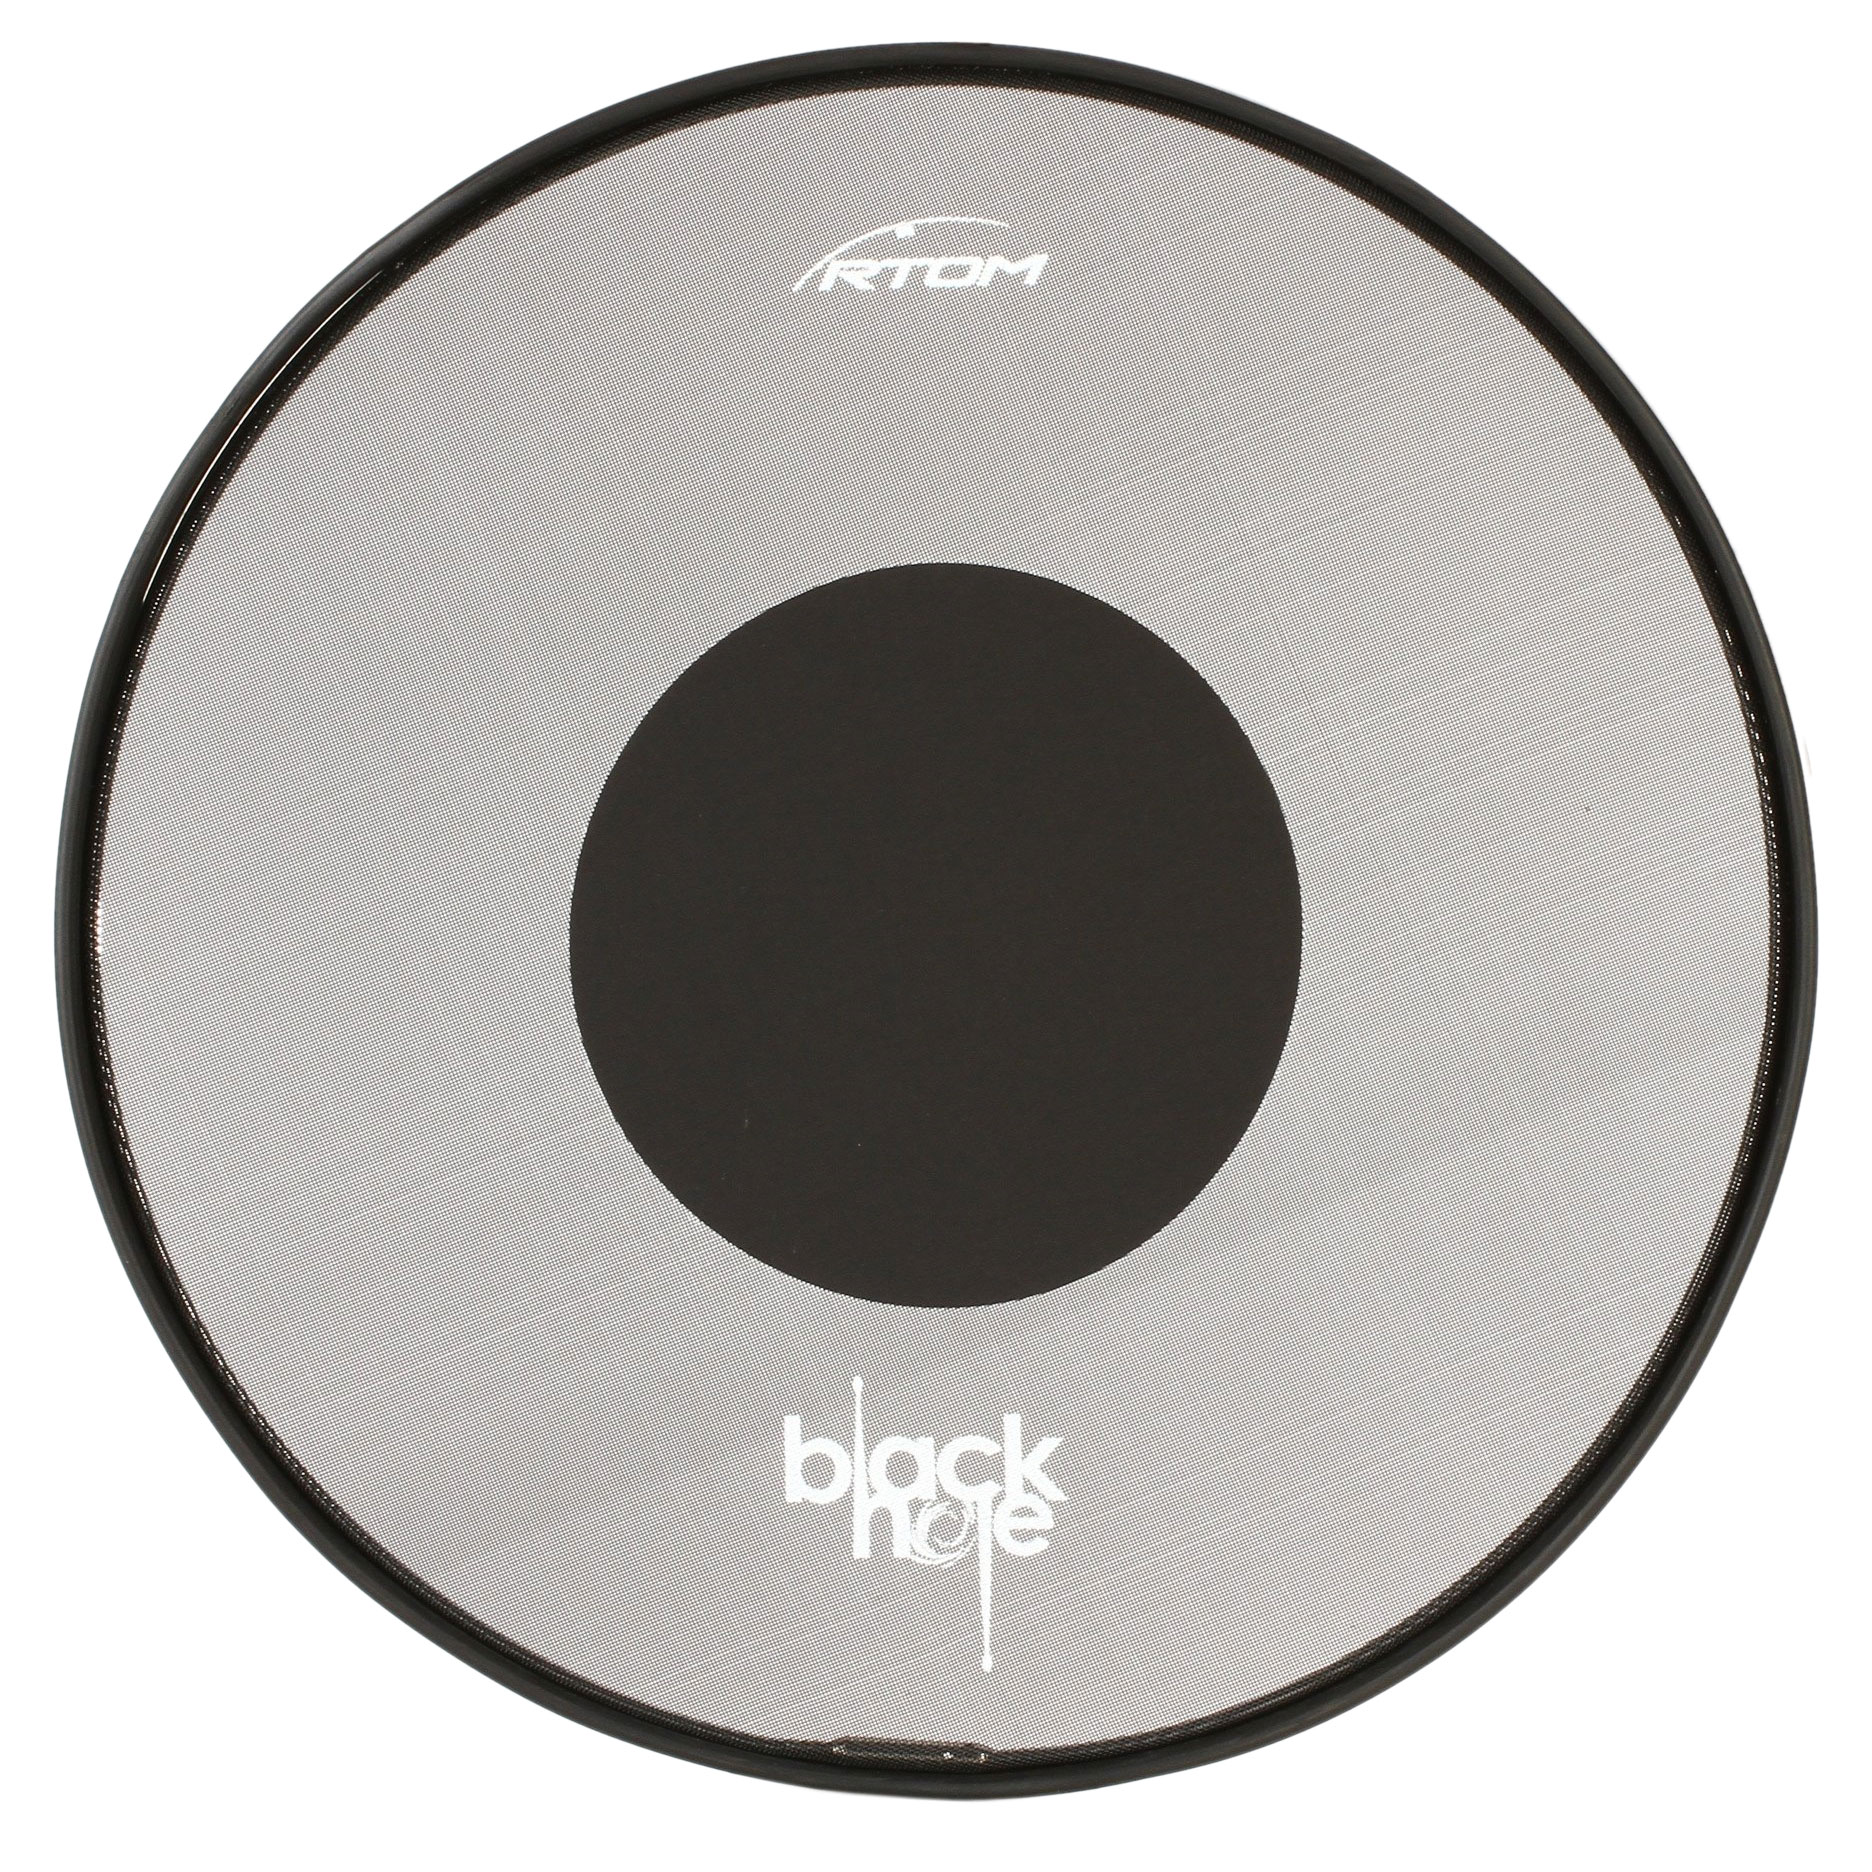 "RTOM 22"" Black Hole Snap-On Bass Drum Practice Pad with Tuneable Mesh Head"